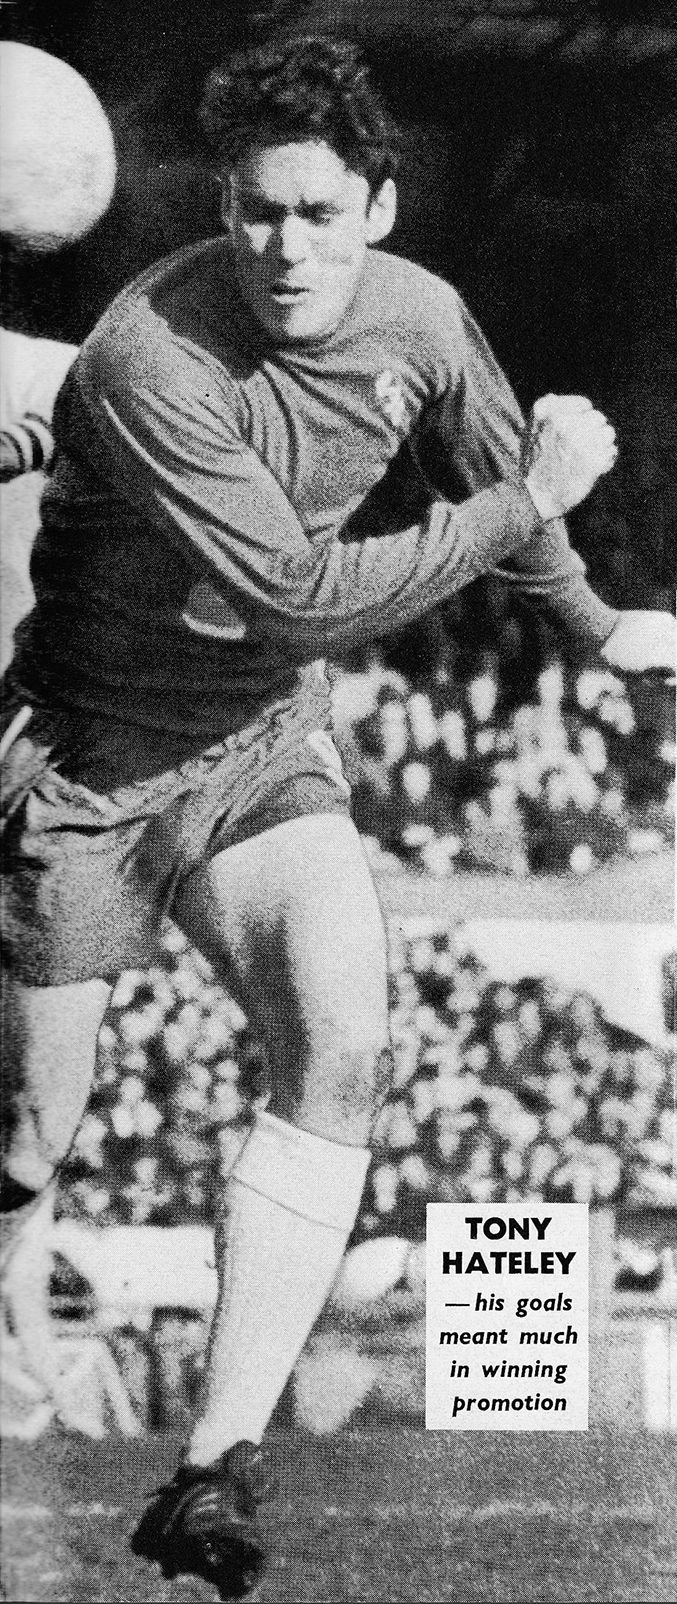 Circa 1966/67. Chelsea centre forward Tony Hateley who was brought in from Aston Villa for £100,000 following to Peter Osgood's leg break at Blackpool in the League Cup